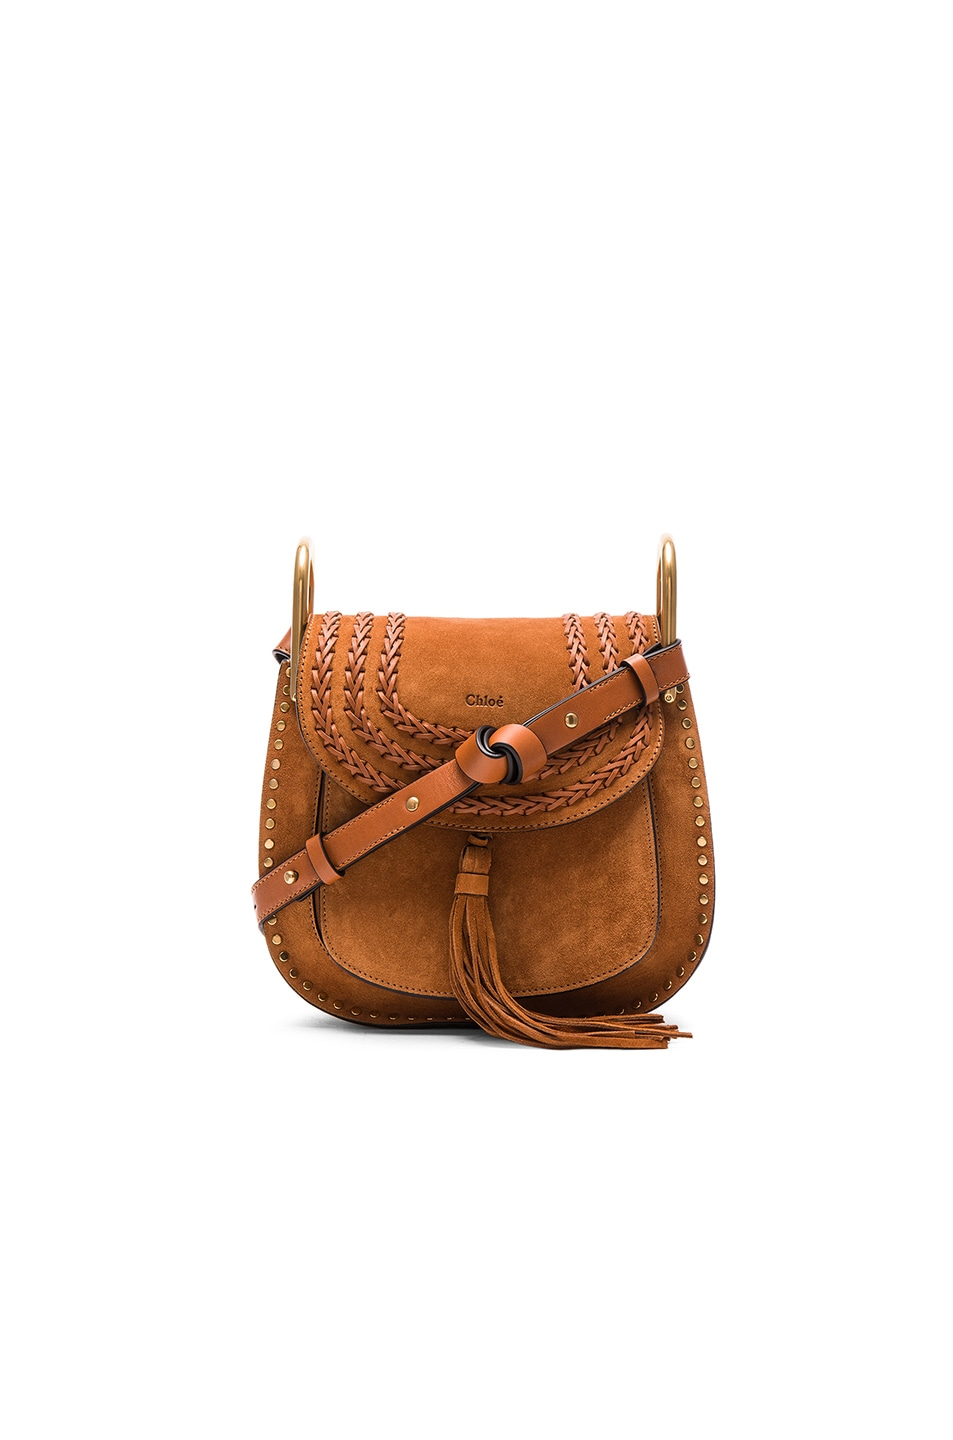 Image 1 of Chloe Small Suede Hudson Bag in Caramel